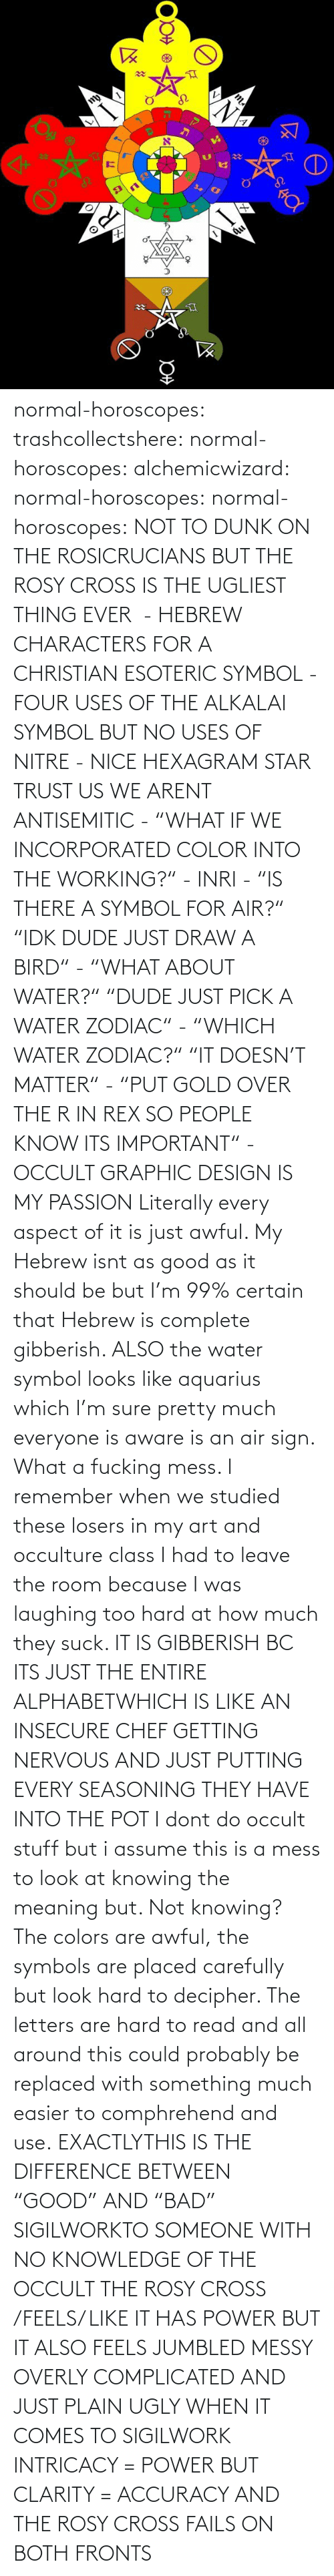 "trust: normal-horoscopes:  trashcollectshere: normal-horoscopes:   alchemicwizard:  normal-horoscopes:  normal-horoscopes: NOT TO DUNK ON THE ROSICRUCIANS BUT THE ROSY CROSS IS THE UGLIEST THING EVER  - HEBREW CHARACTERS FOR A CHRISTIAN ESOTERIC SYMBOL - FOUR USES OF THE ALKALAI SYMBOL BUT NO USES OF NITRE - NICE HEXAGRAM STAR TRUST US WE ARENT ANTISEMITIC - ""WHAT IF WE INCORPORATED COLOR INTO THE WORKING?"" - INRI - ""IS THERE A SYMBOL FOR AIR?"" ""IDK DUDE JUST DRAW A BIRD"" - ""WHAT ABOUT WATER?"" ""DUDE JUST PICK A WATER ZODIAC"" - ""WHICH WATER ZODIAC?"" ""IT DOESN'T MATTER"" - ""PUT GOLD OVER THE R IN REX SO PEOPLE KNOW ITS IMPORTANT"" - OCCULT GRAPHIC DESIGN IS MY PASSION  Literally every aspect of it is just awful. My Hebrew isnt as good as it should be but I'm 99% certain that Hebrew is complete gibberish.  ALSO the water symbol looks like aquarius which I'm sure pretty much everyone is aware is an air sign. What a fucking mess.  I remember when we studied these losers in my art and occulture class I had to leave the room because I was laughing too hard at how much they suck.   IT IS GIBBERISH BC ITS JUST THE ENTIRE ALPHABETWHICH IS LIKE AN INSECURE CHEF GETTING NERVOUS AND JUST PUTTING EVERY SEASONING THEY HAVE INTO THE POT     I dont do occult stuff but i assume this is a mess to look at knowing the meaning but. Not knowing? The colors are awful, the symbols are placed carefully but look hard to decipher. The letters are hard to read and all around this could probably be replaced with something much easier to comphrehend and use.  EXACTLYTHIS IS THE DIFFERENCE BETWEEN ""GOOD"" AND ""BAD"" SIGILWORKTO SOMEONE WITH NO KNOWLEDGE OF THE OCCULT THE ROSY CROSS /FEELS/ LIKE IT HAS POWER BUT IT ALSO FEELS JUMBLED MESSY OVERLY COMPLICATED AND JUST PLAIN UGLY WHEN IT COMES TO SIGILWORK INTRICACY = POWER BUT CLARITY = ACCURACY AND THE ROSY CROSS FAILS ON BOTH FRONTS"